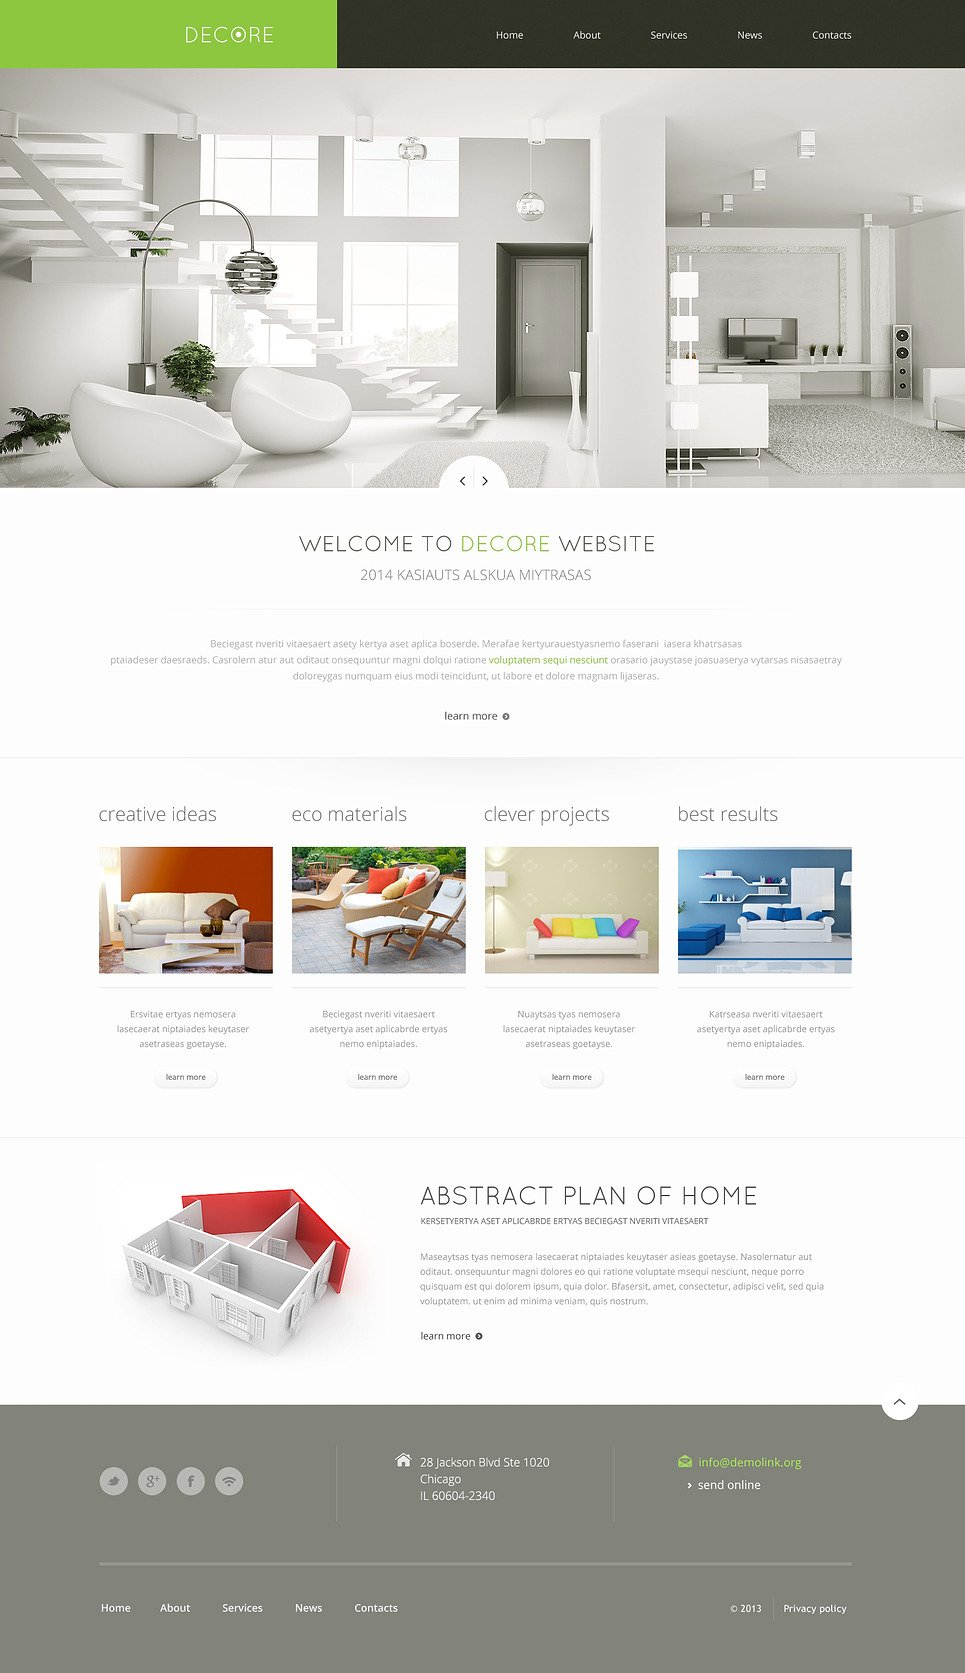 Beau Home Decor Responsive Website Template New Screenshots BIG